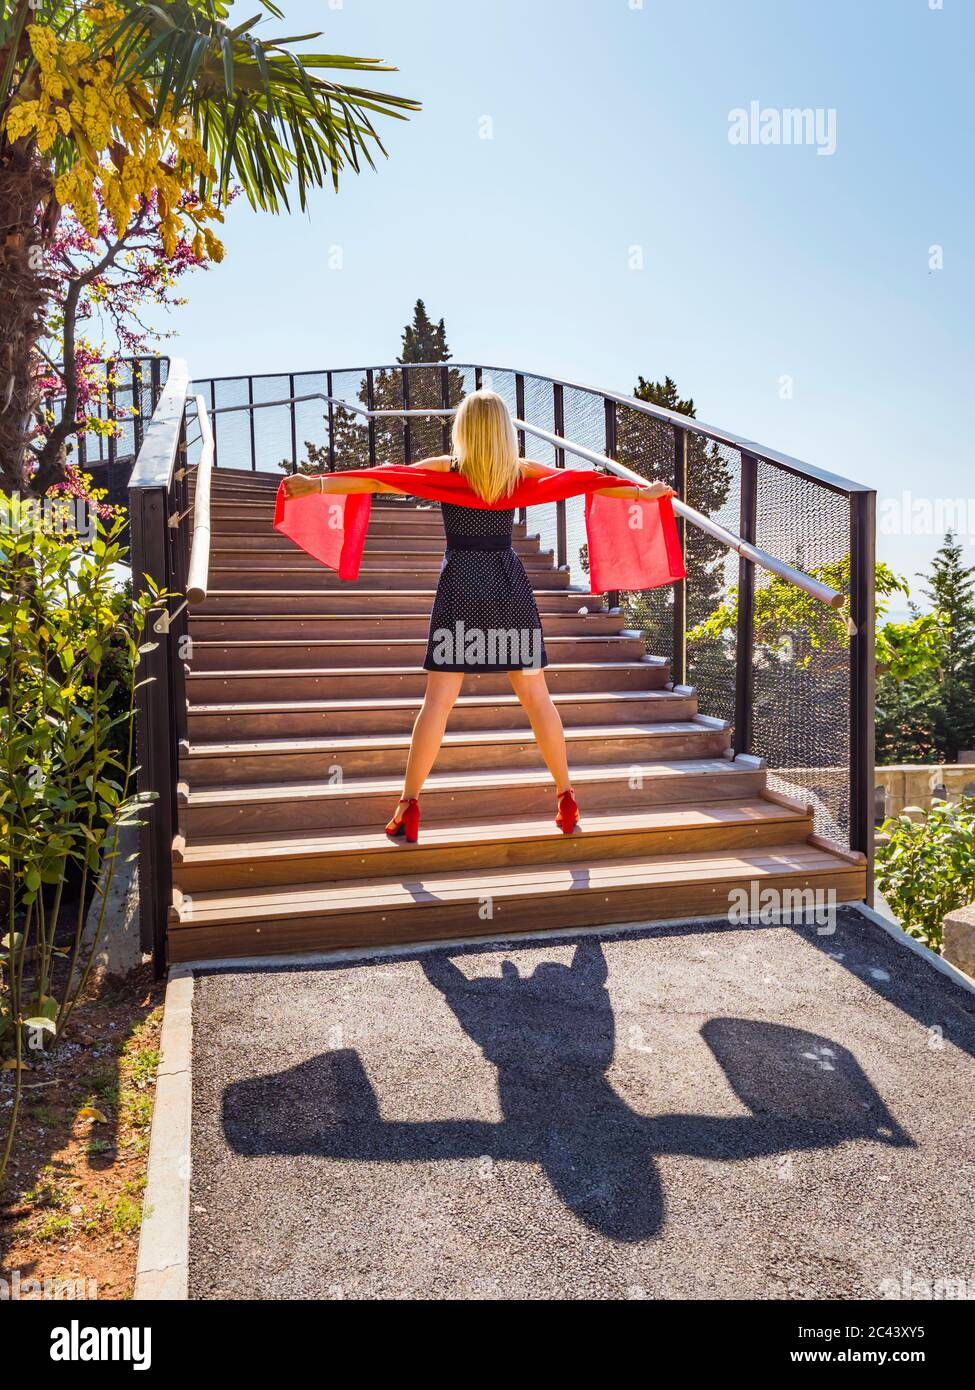 Attractive blonde woman standing spreading apart hands arms legs holding hold bright Red scarf against light sunlight sunshine on staircase MR Stock Photo